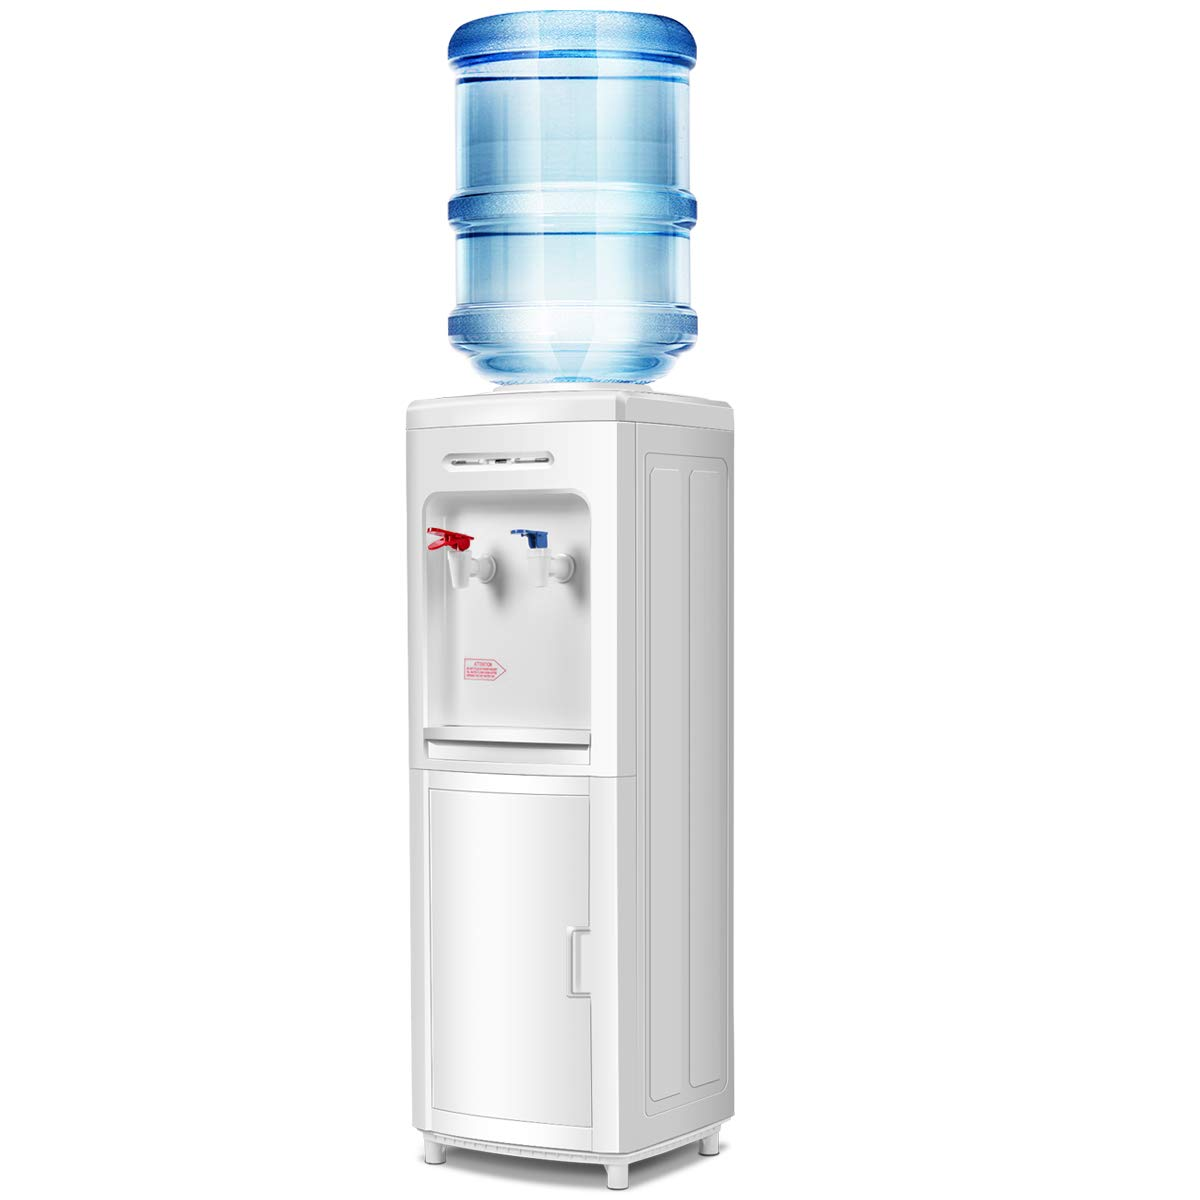 Giantex Top Loading Water Cooler Dispenser